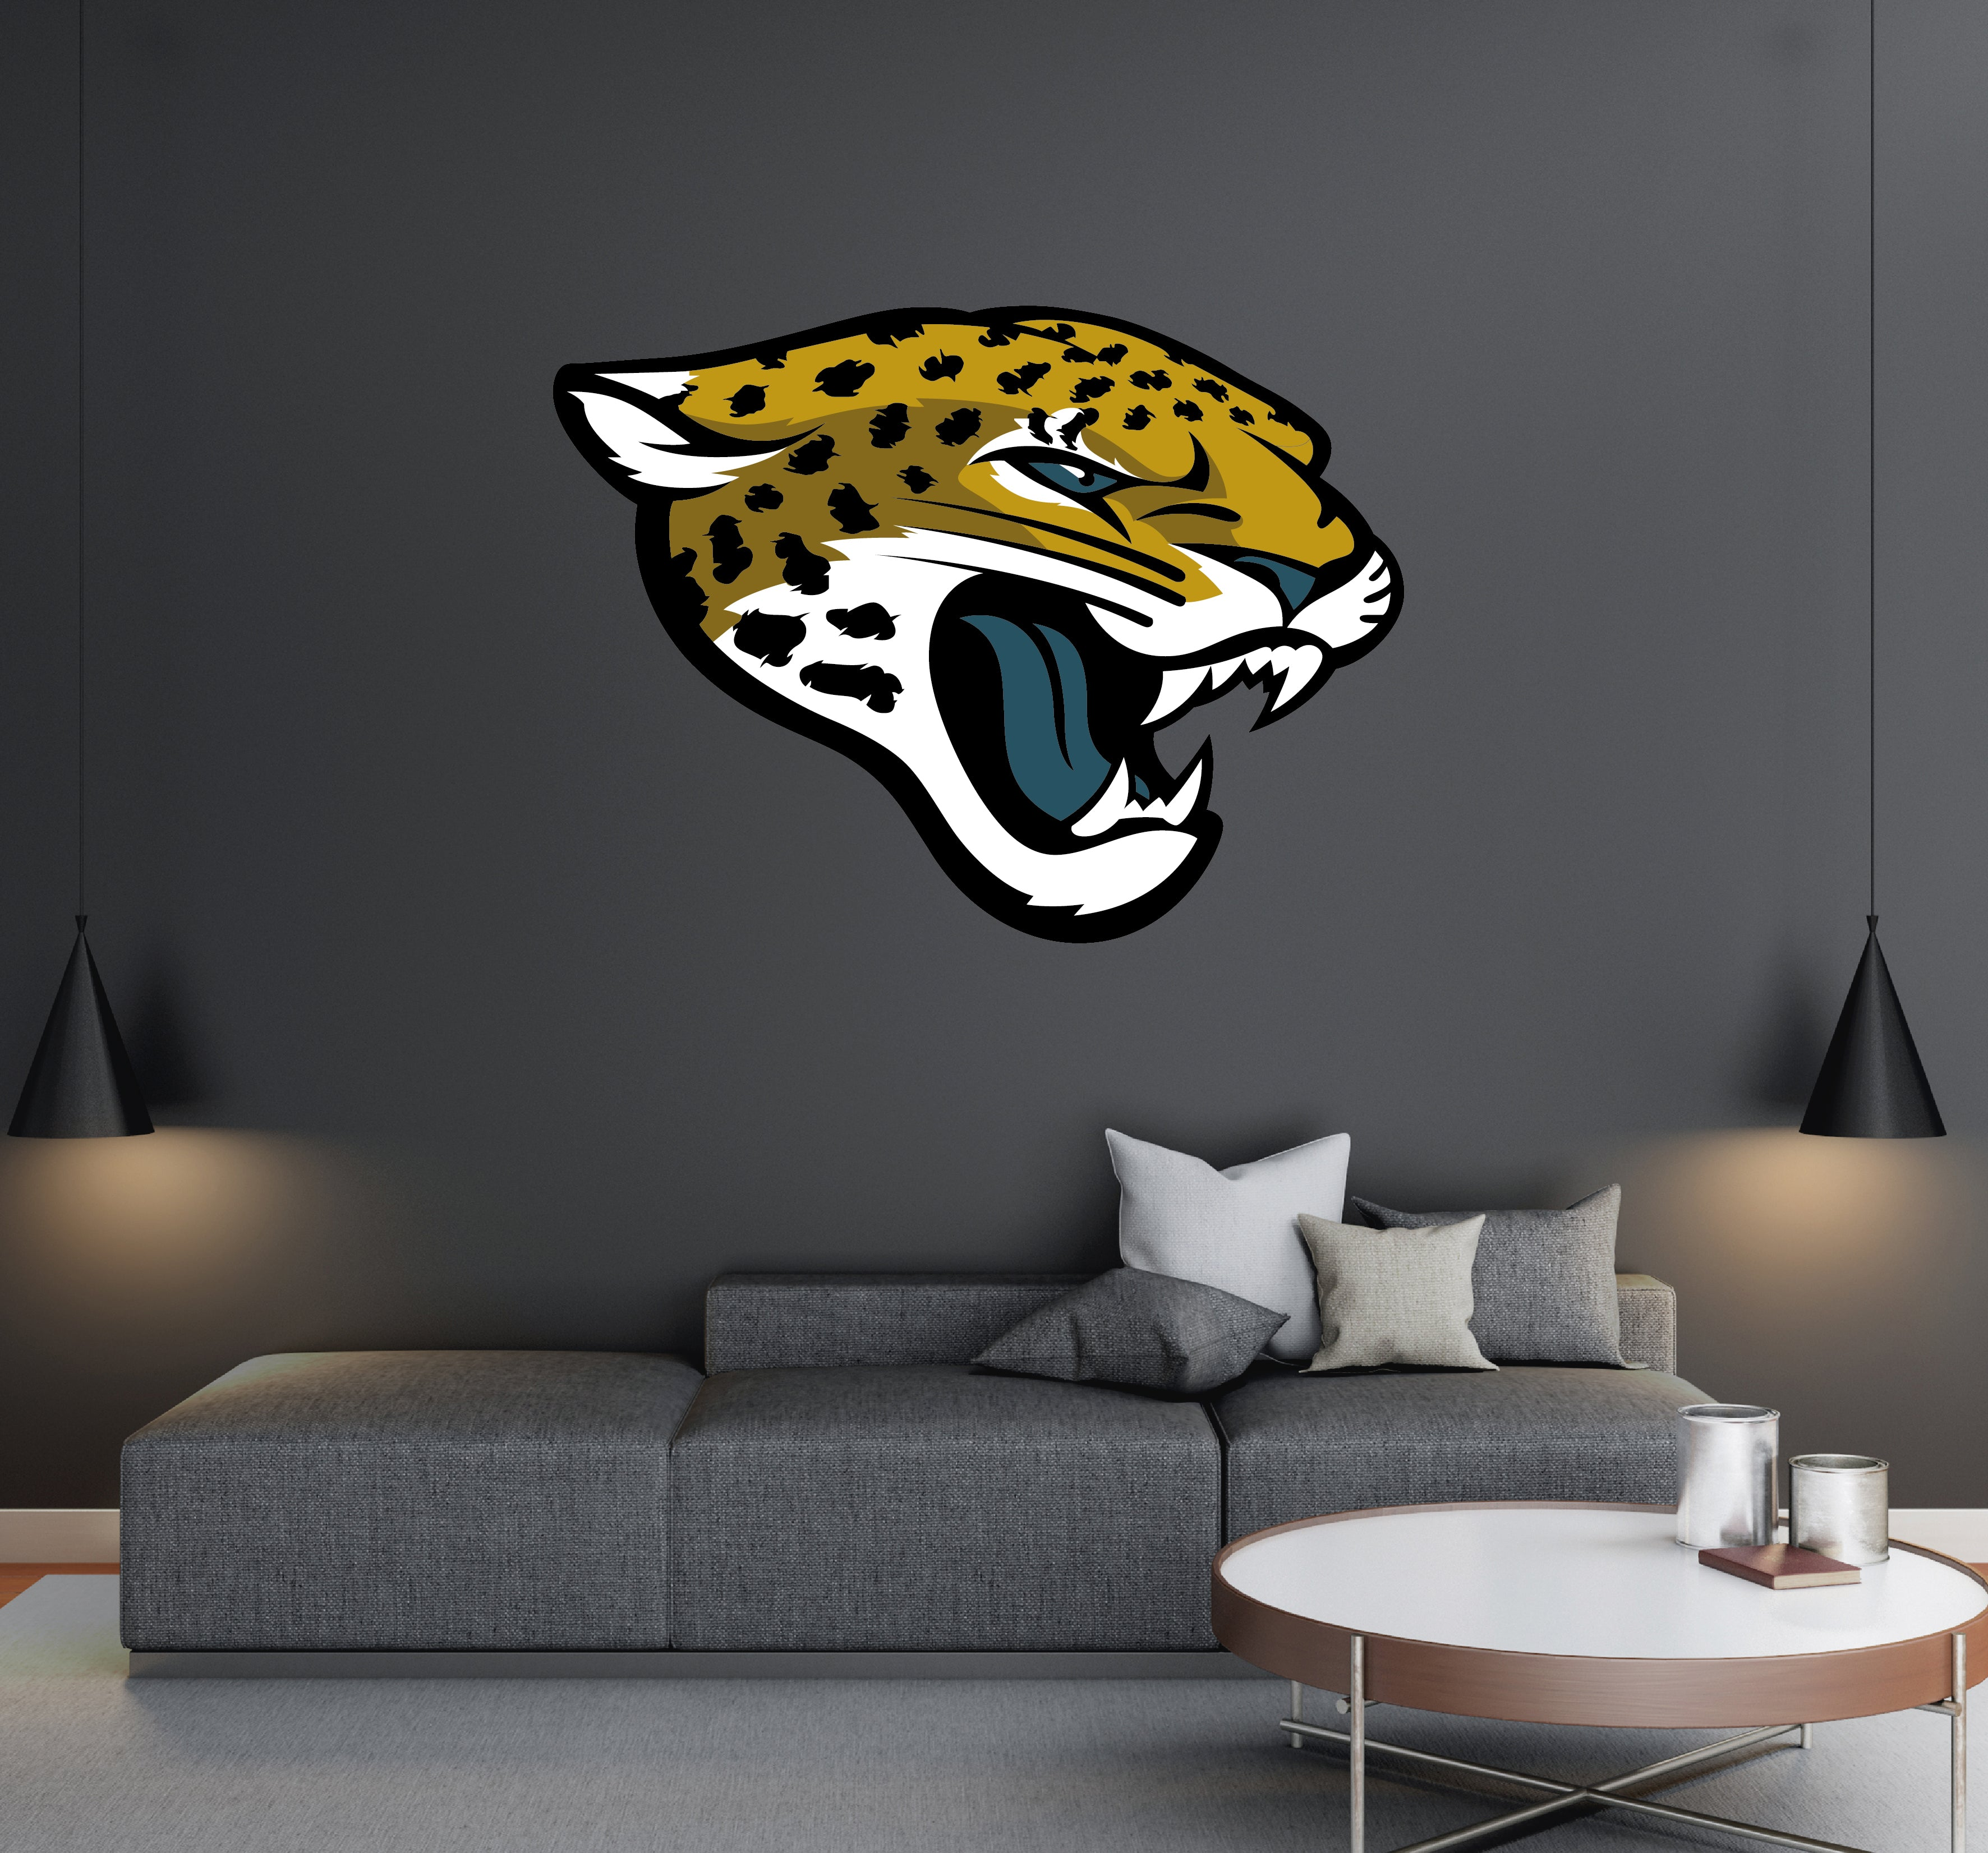 Jacksonville Jaguars - NFL Football Team Logo - Wall Decal Removable & Reusable For Home Bedroom